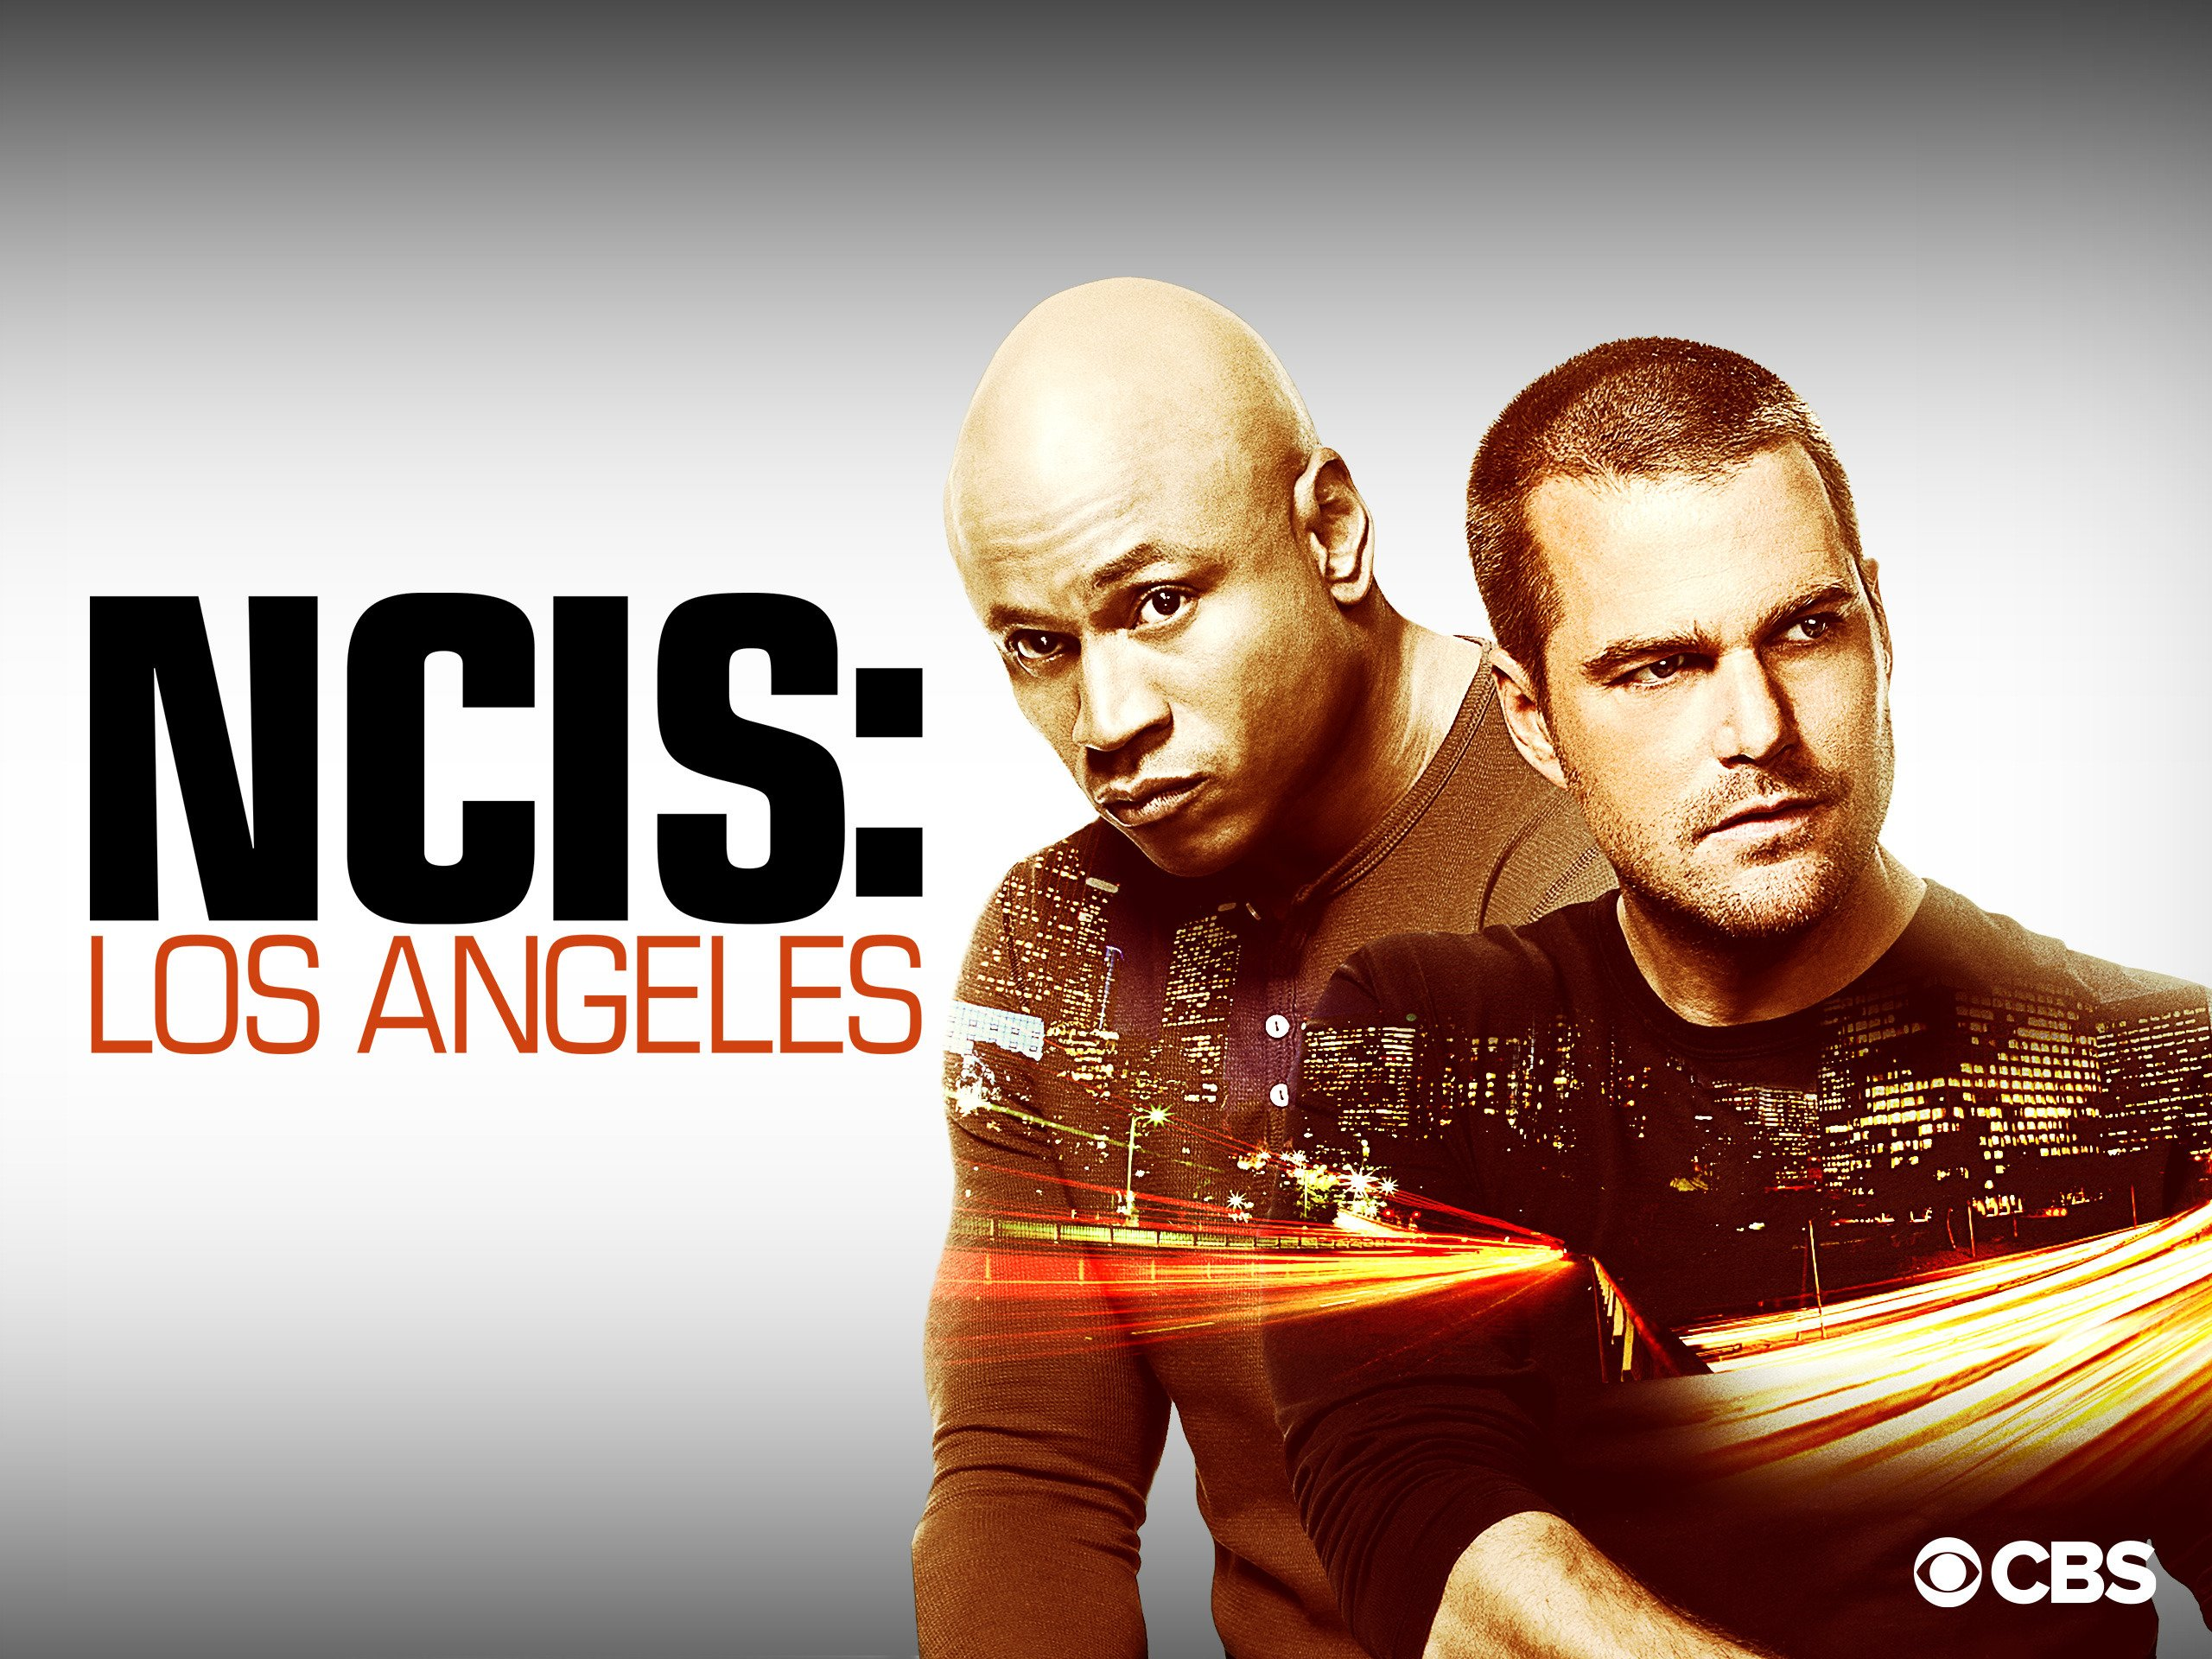 ncis los angeles season 9 episode 1 free online